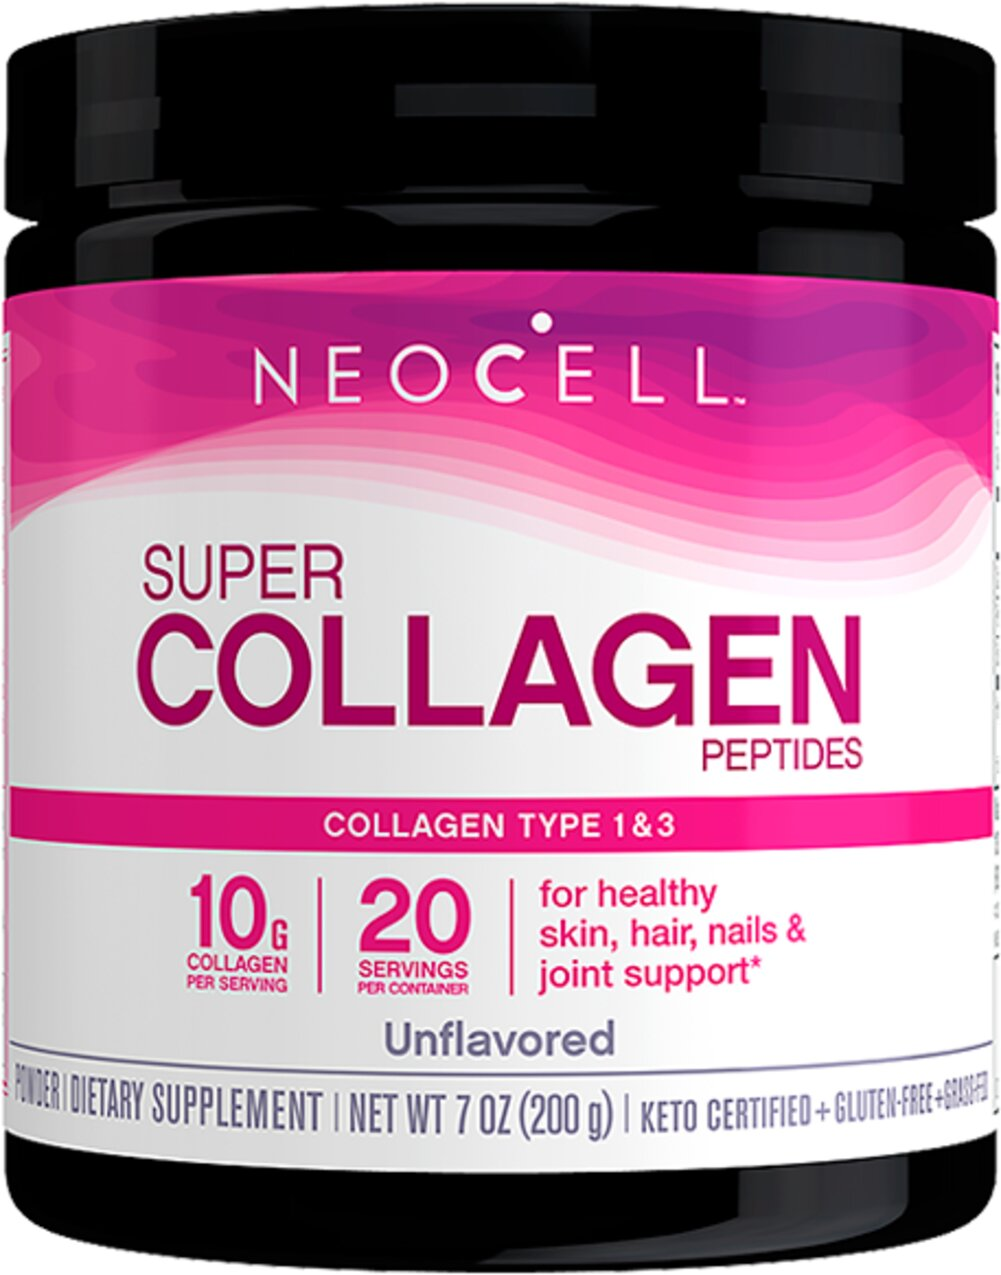 Collagen Type 1 & 3 Powder <p><strong>From the Manufacturer's Label: </strong></p><p>Pure & Natural</p><p>Collagen (collagen hydrolysate) is a complex structural protein that maintains strength and flexibility of skin, ligaments, bones, joints, muscles, tendons, gums, teeth, eyes, blood vessels, nails and hair. Collagen Type I & III is 100% pure collagen protein that provides building materials for growth and maintenance of a heal